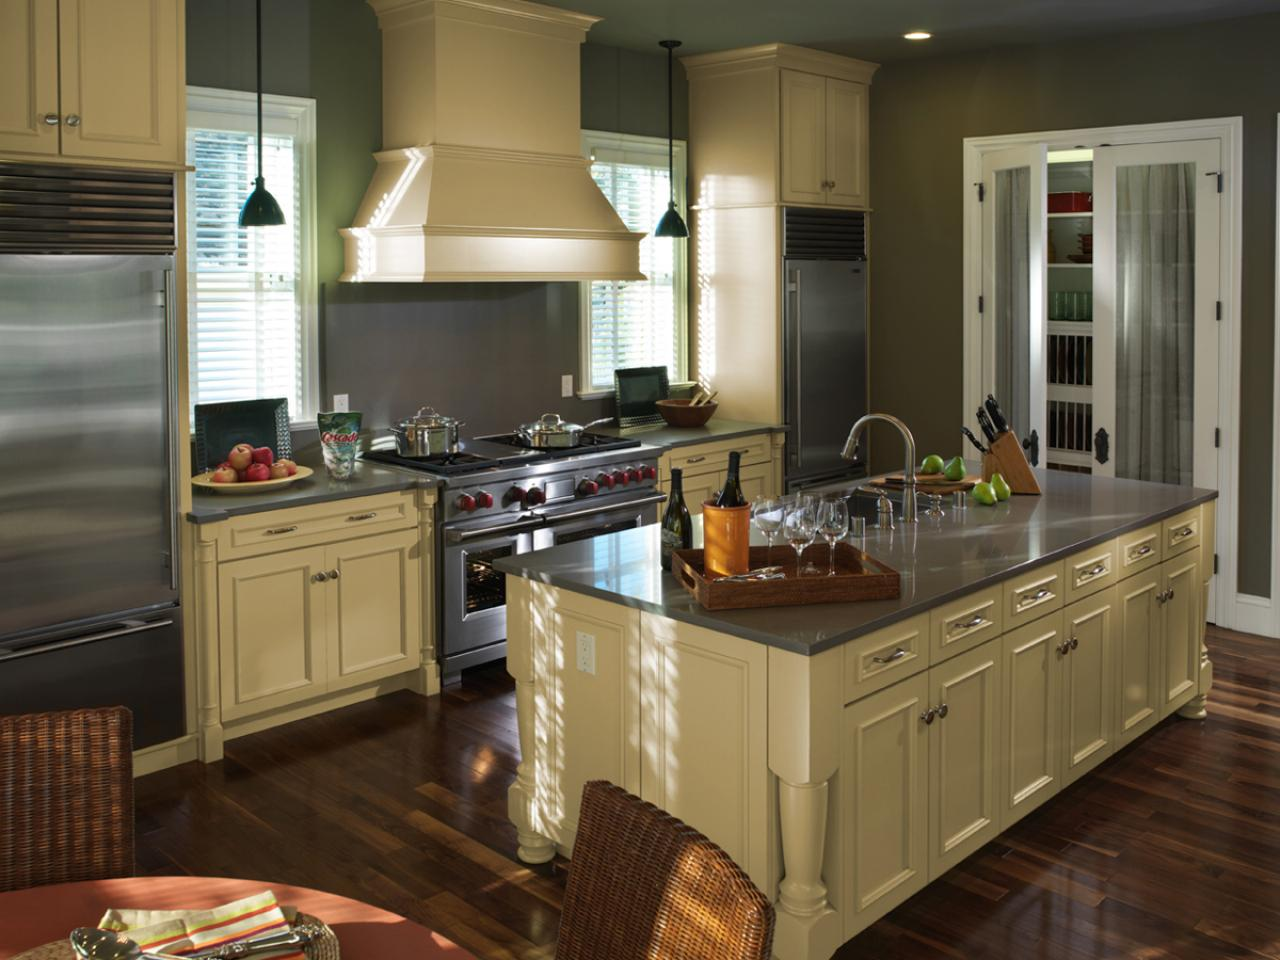 best place to buy kitchen island vintage cabinet hardware 1940s decor pictures ideas and tips from hgtv